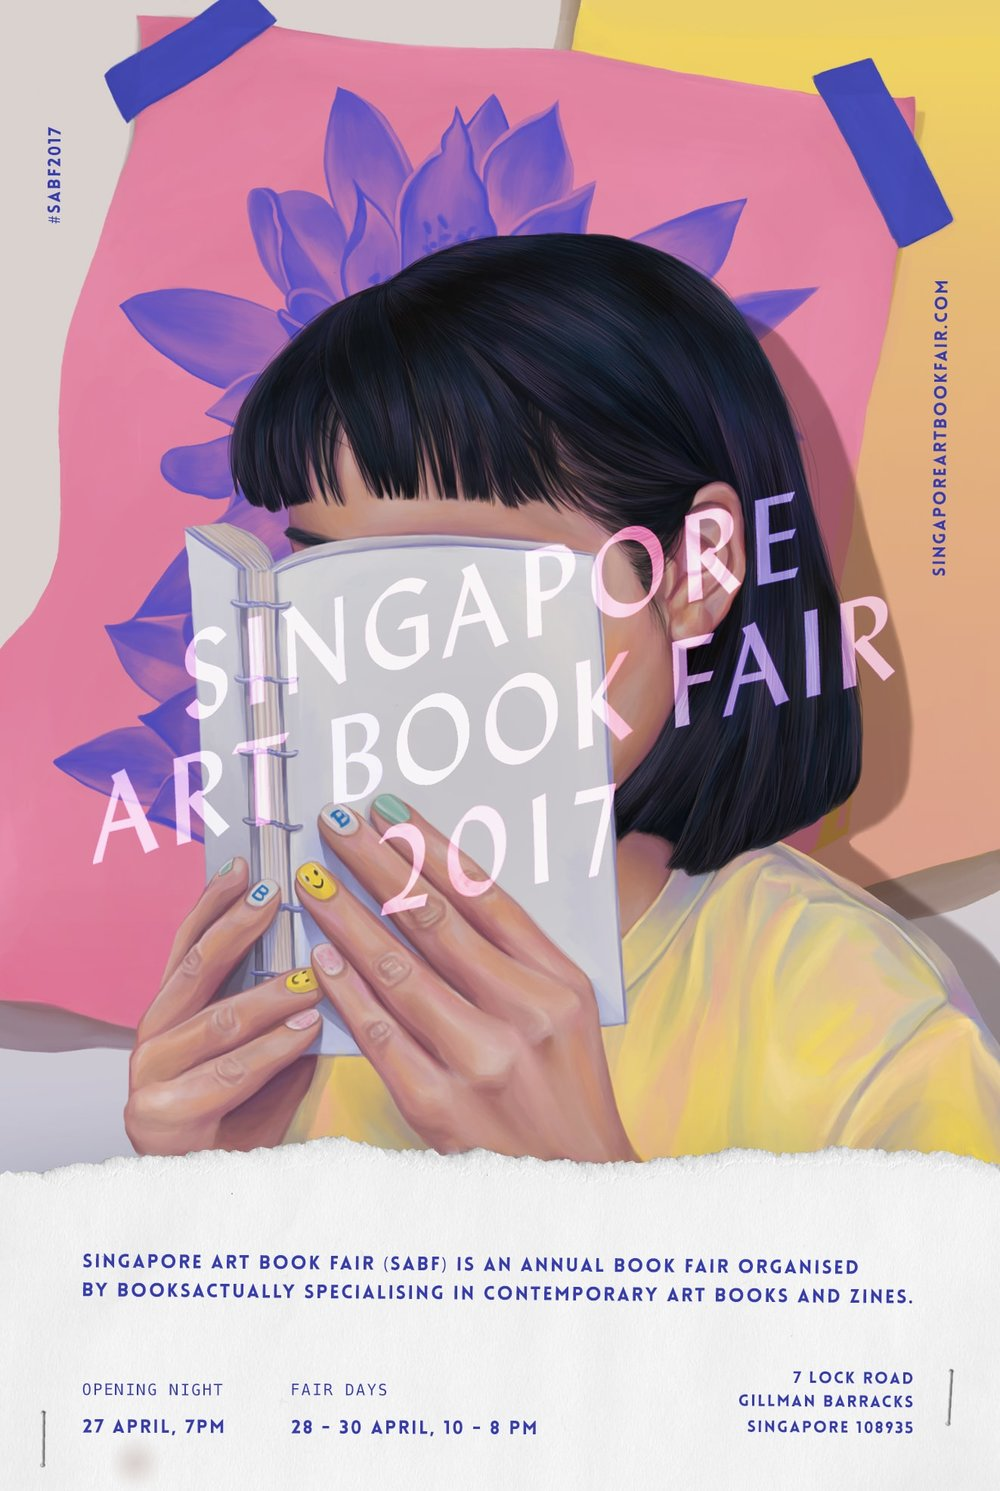 Popwire: Knock Yourself Out At The Singapore Art Book Fair -